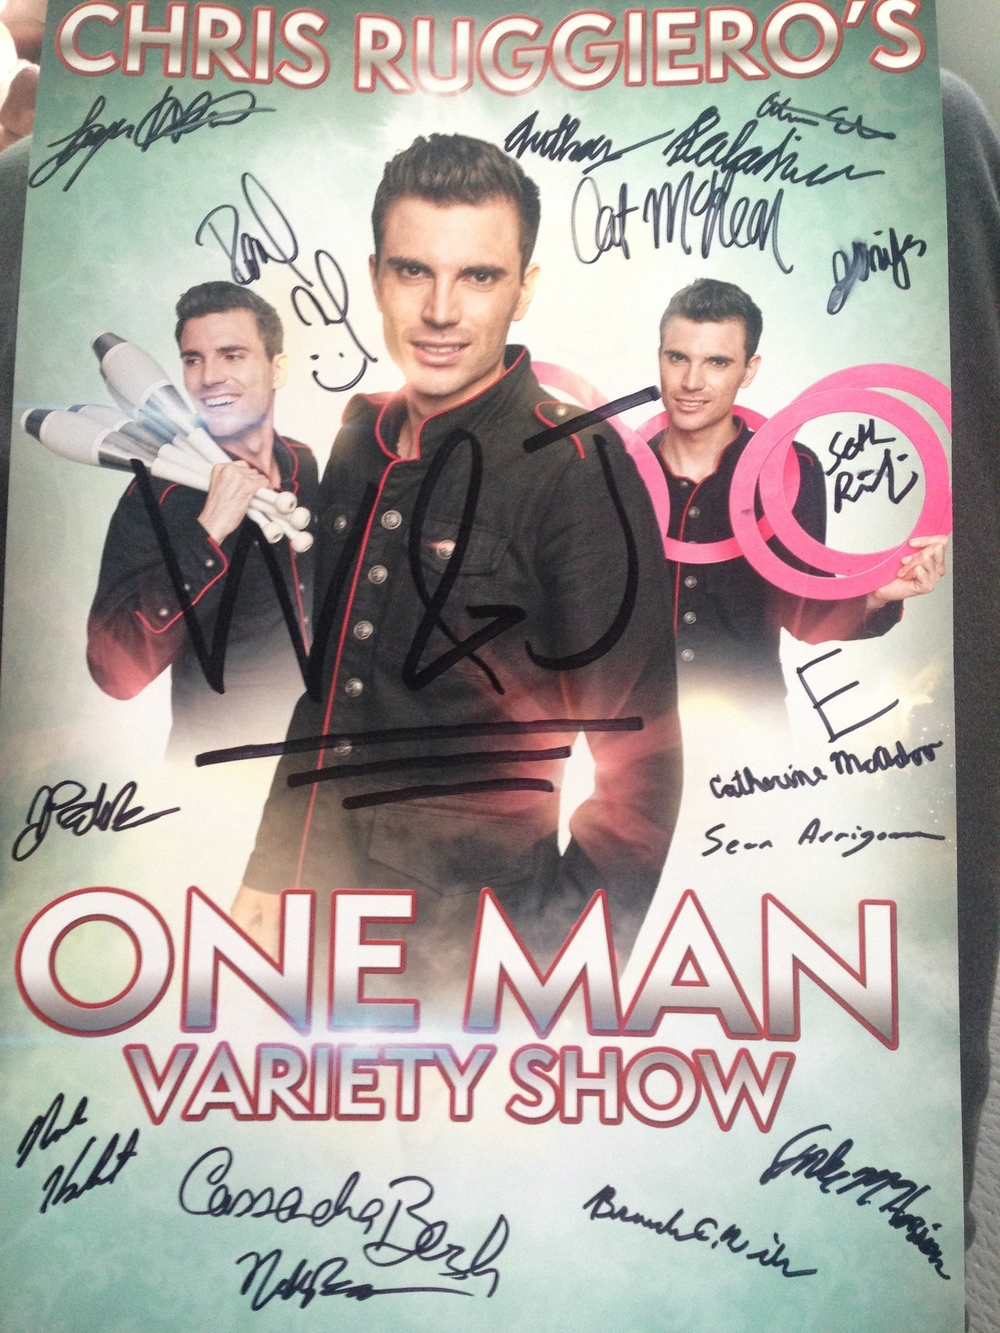 Here's a poster from a recent show at Washington & Jefferson College the audience members signed FOR ME after the show.